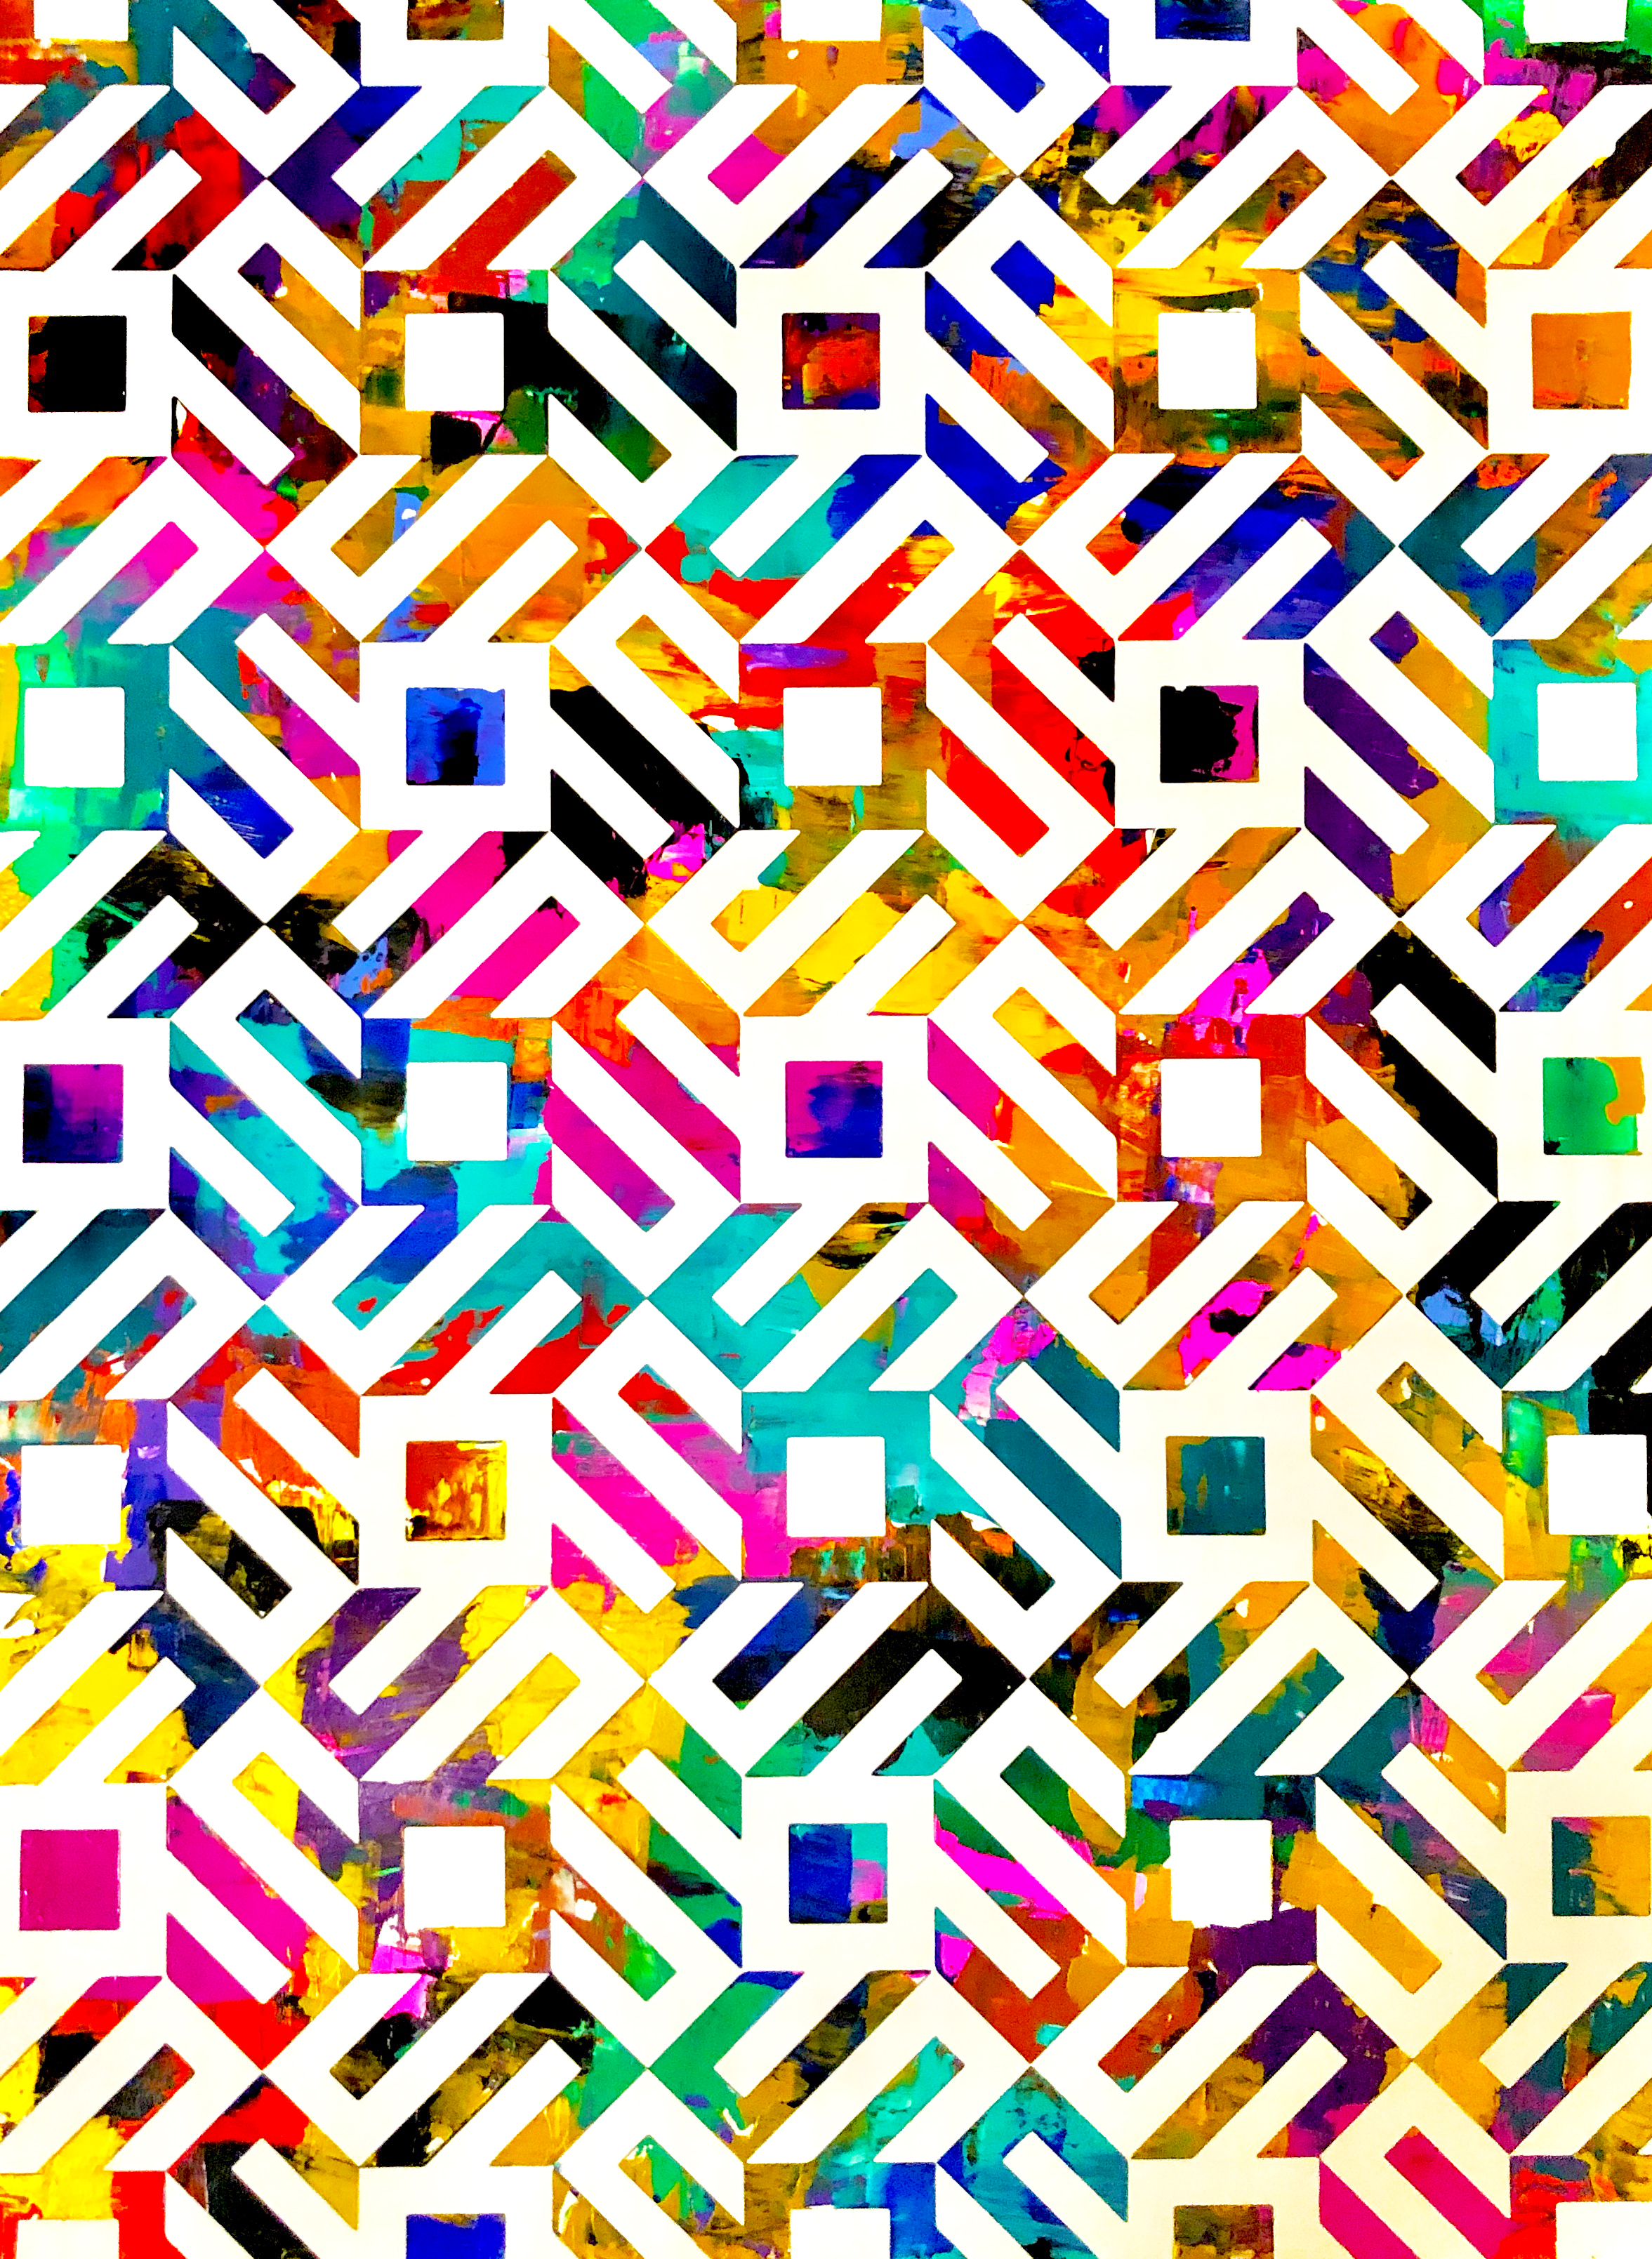 HUE Gallery of Contemporary Art - Sean Christopher Ward - Floating Squares - Acrylic on MDF - 12x16 - 2018 - $375.JPG